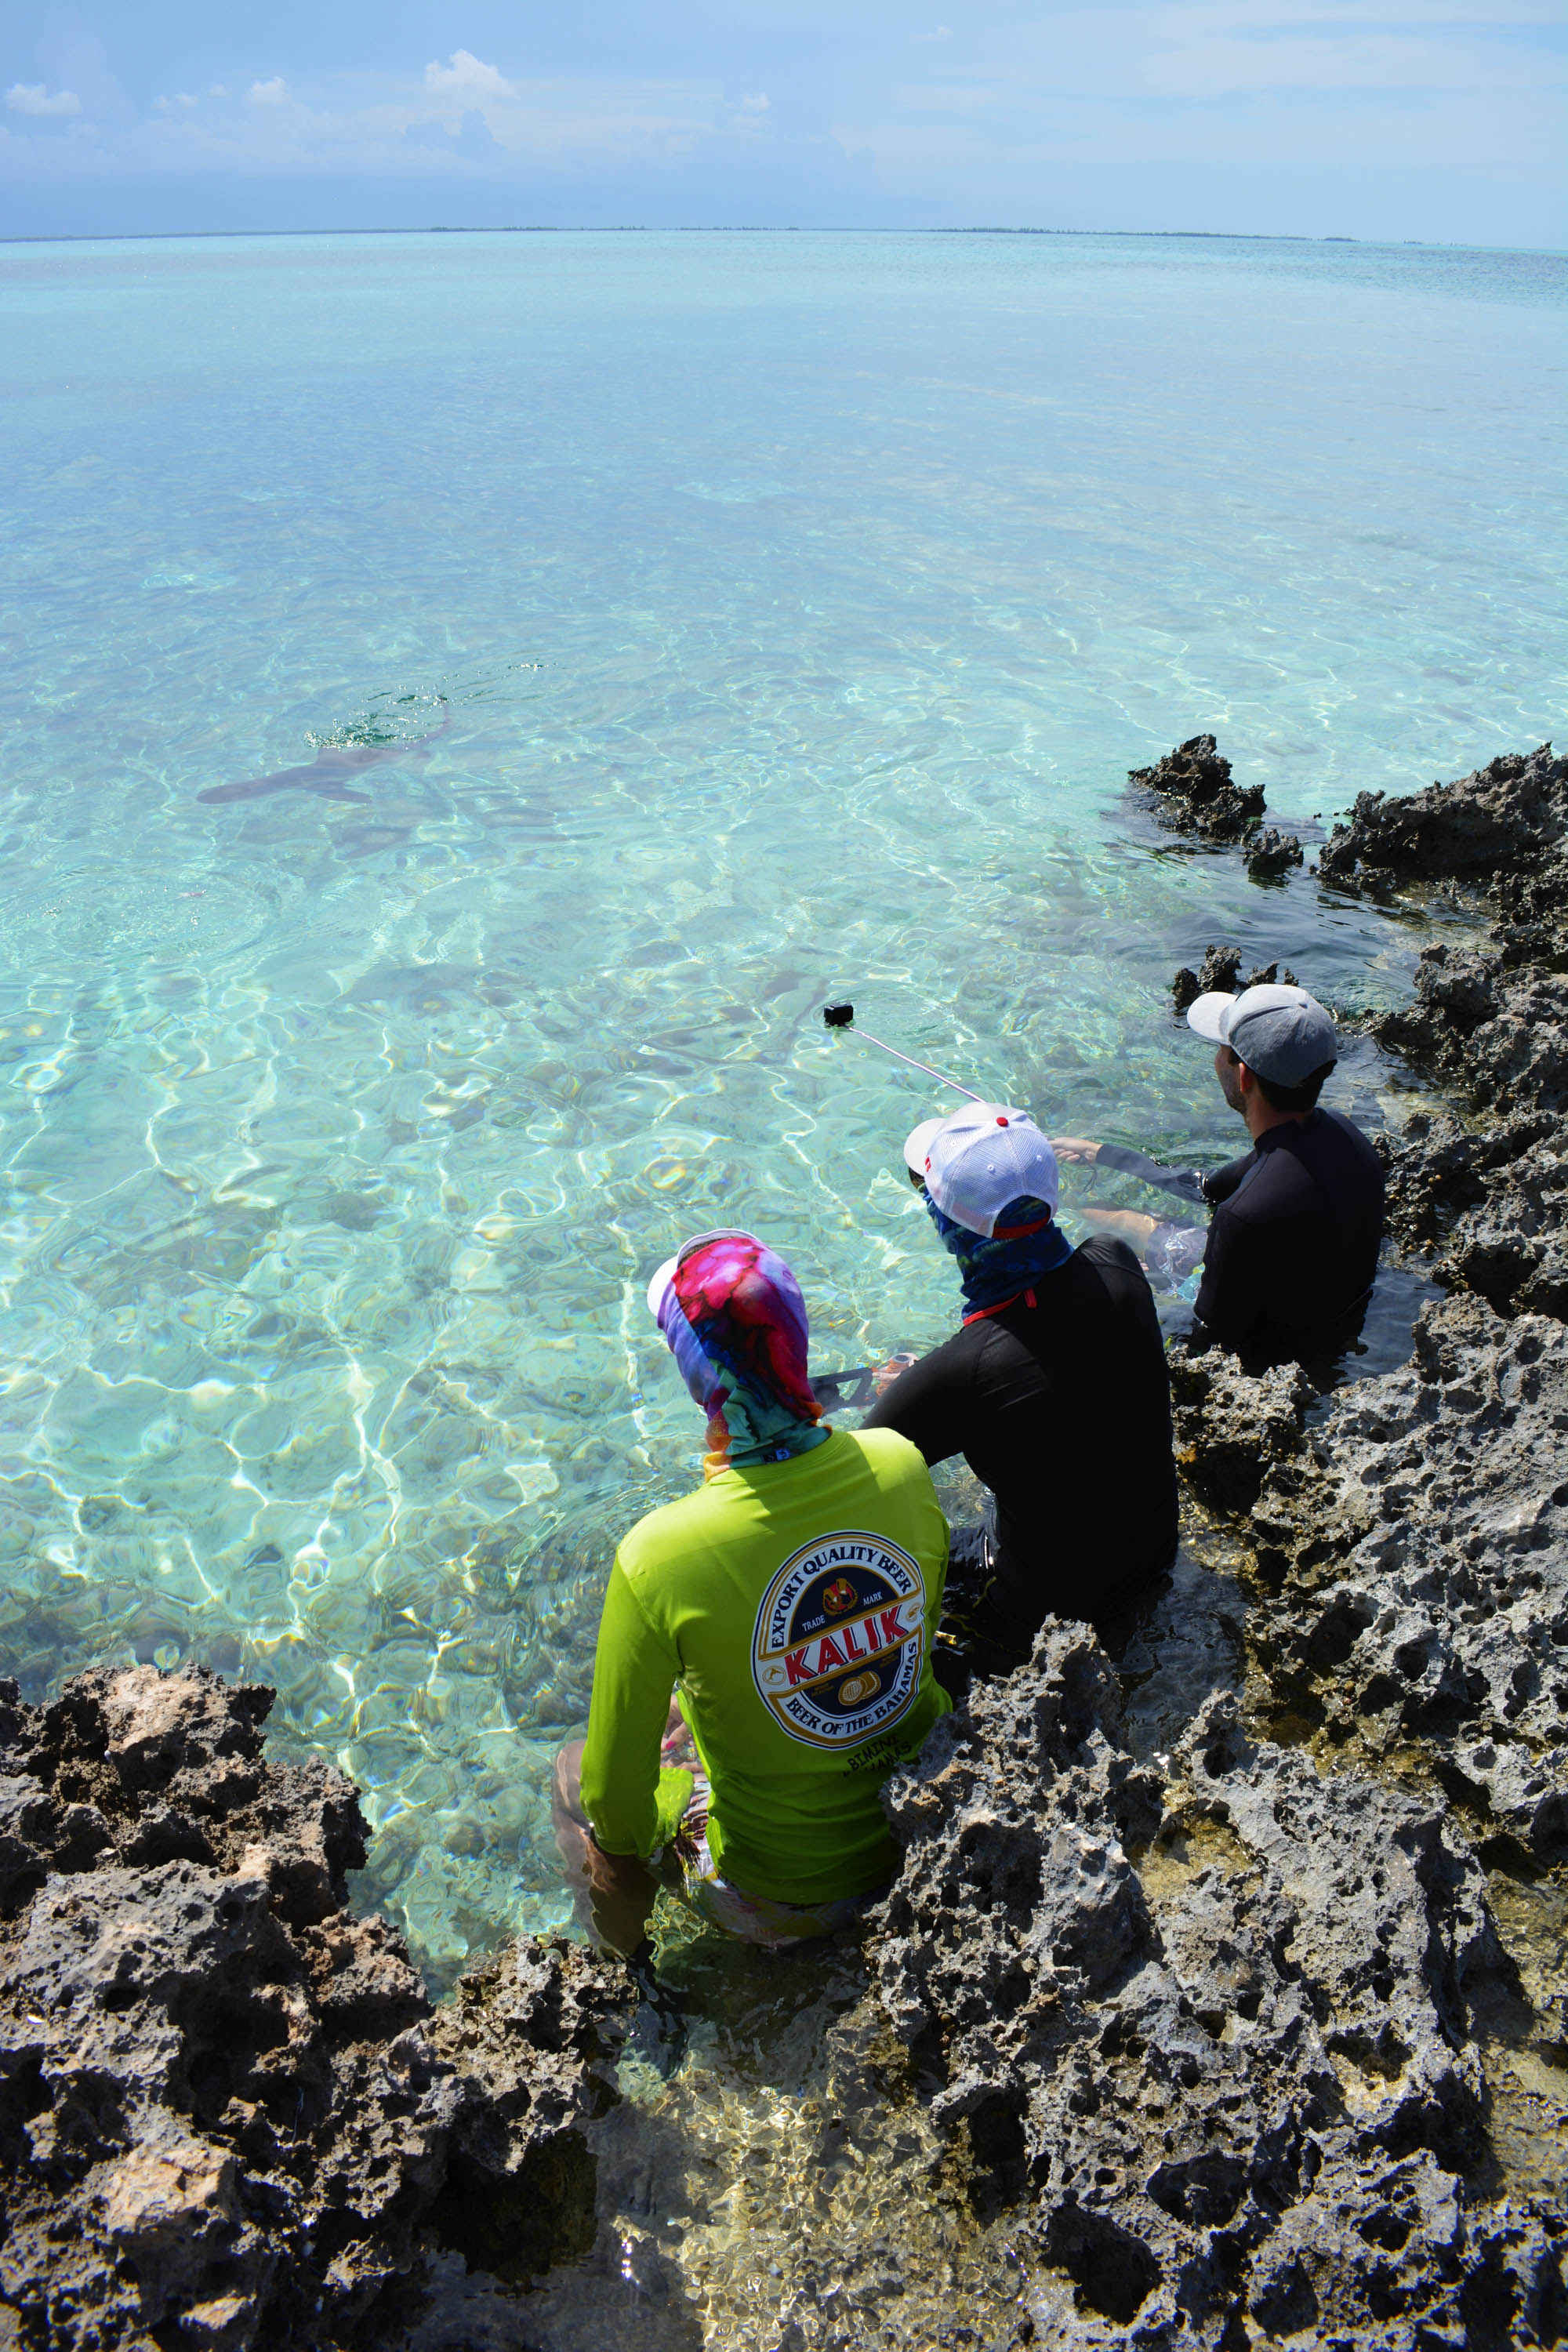 Expedition guests enjoy watching a reef shark feeding